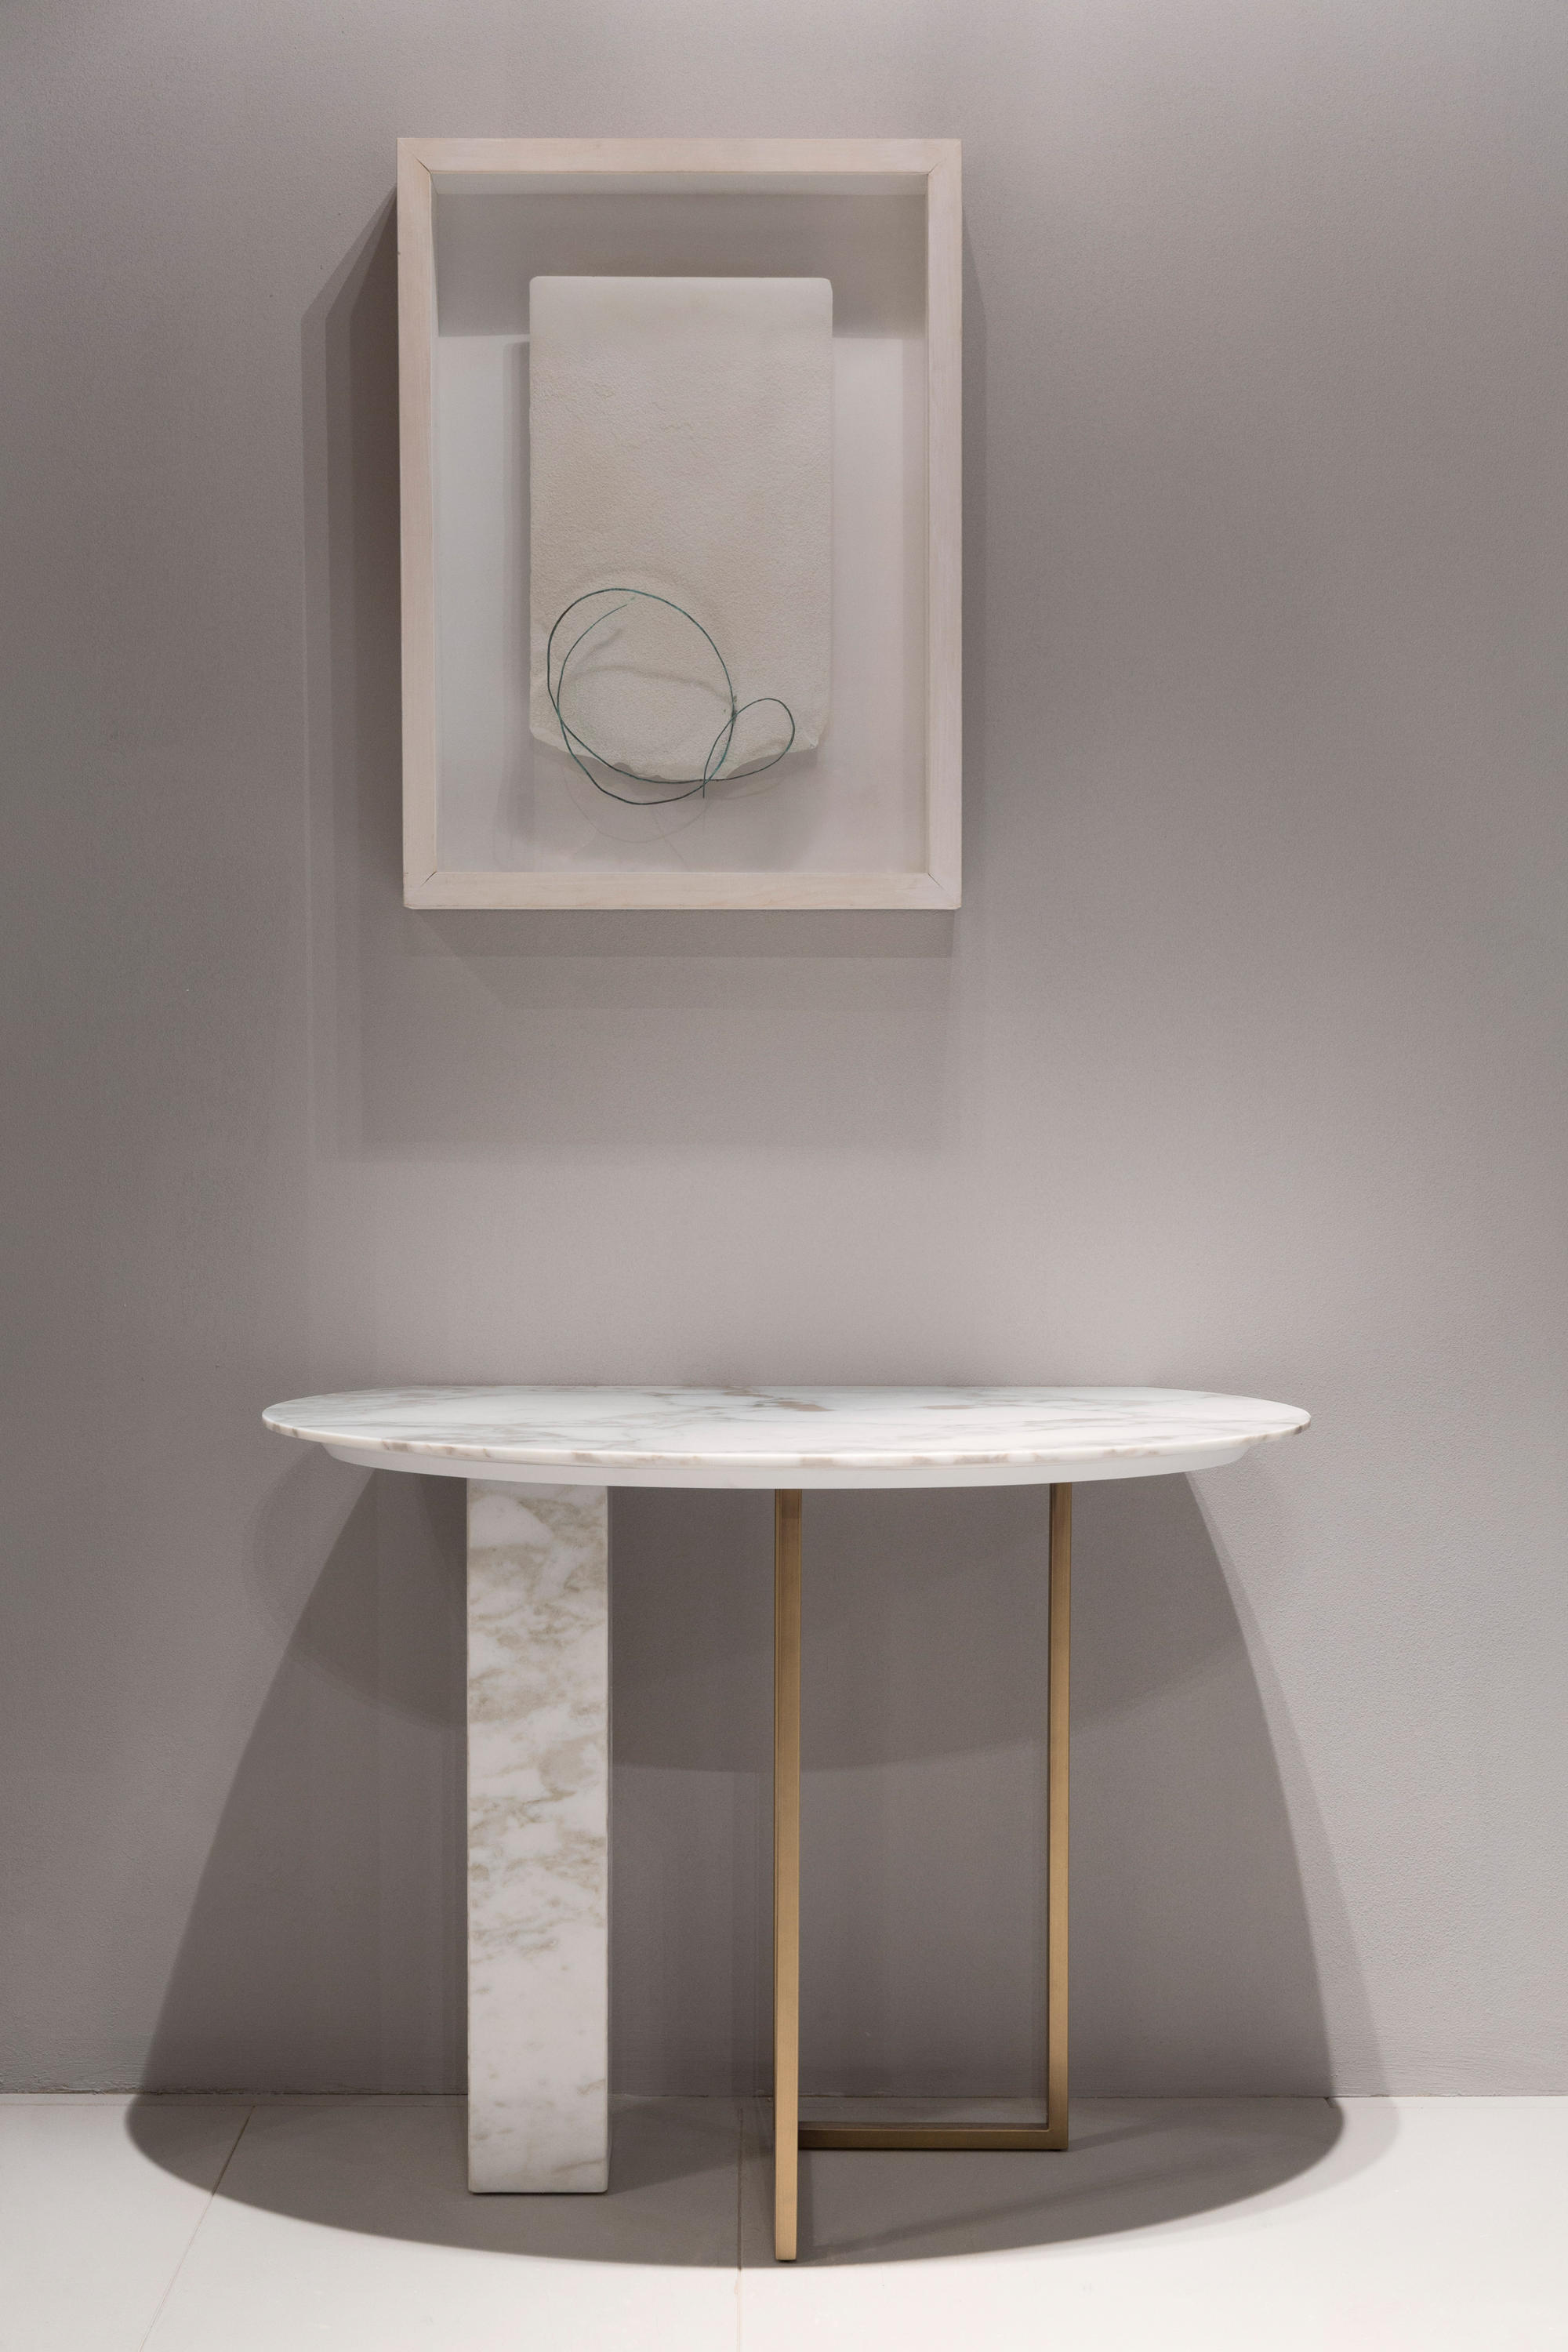 marble console table 10 Unparalleled Marble Console Tables 3 10 Unparalleled Marble Console Tables 1